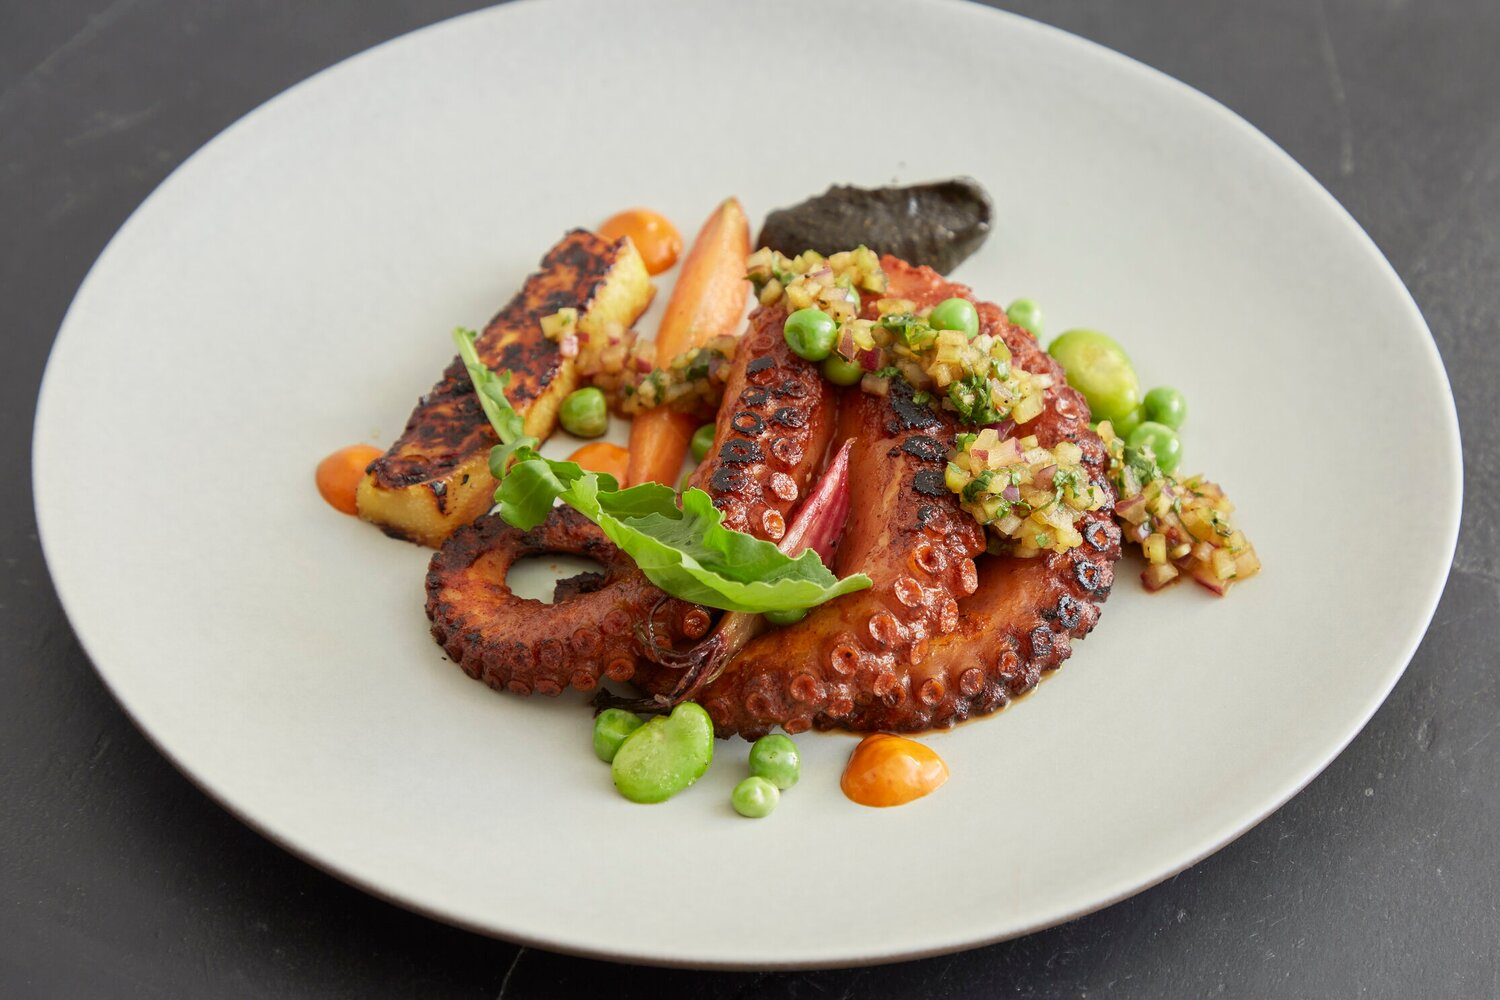 A plate of octopus from incoming 14th Street NW restaurant Maiz 64.